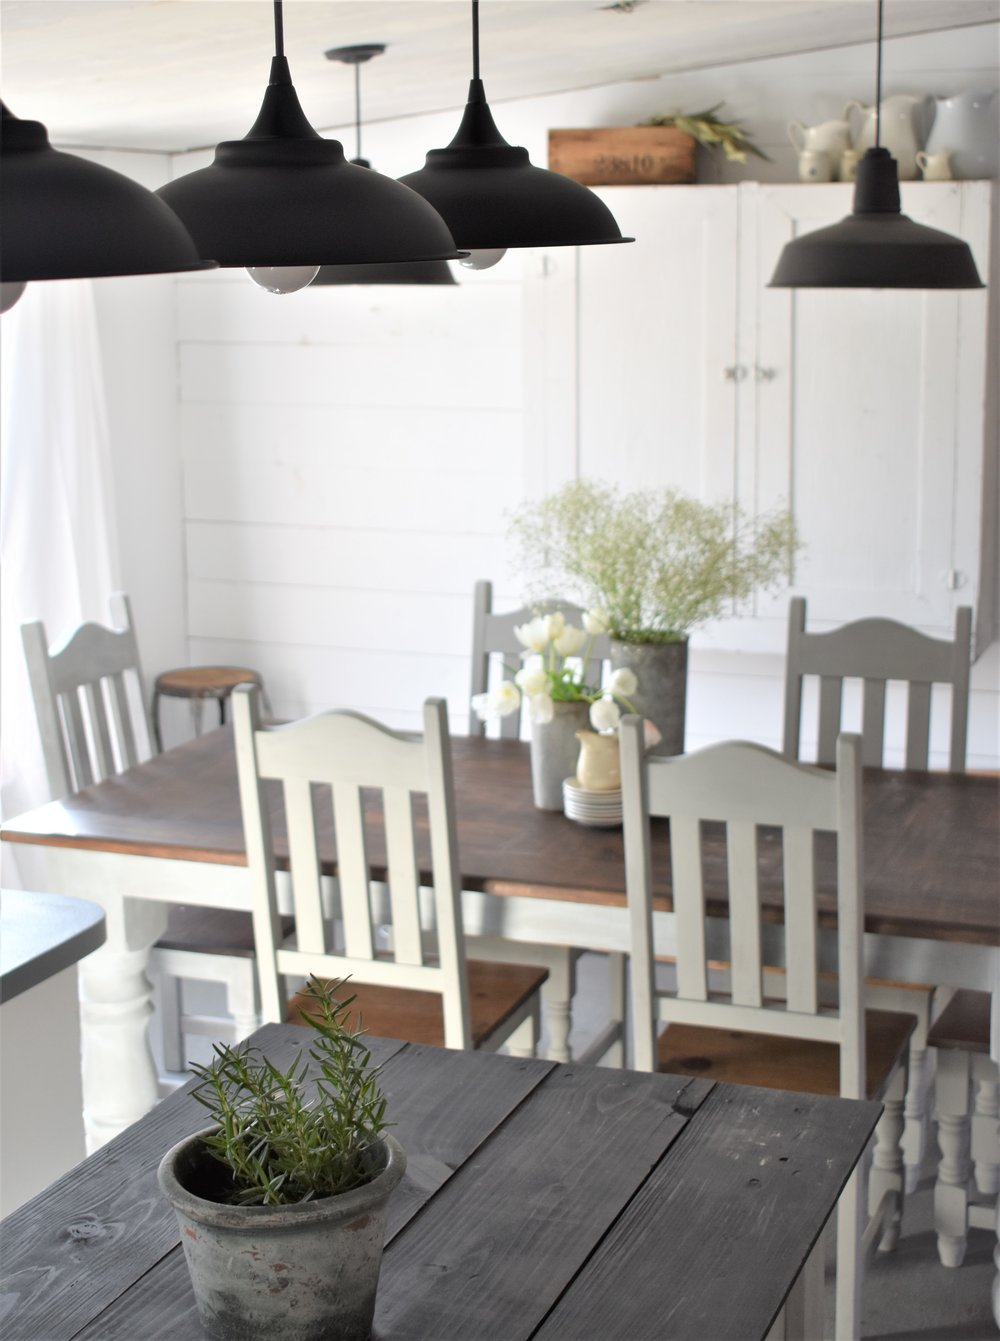 DIY Farmhouse Style Lighting on a Budget | Rocky Hedge Farm